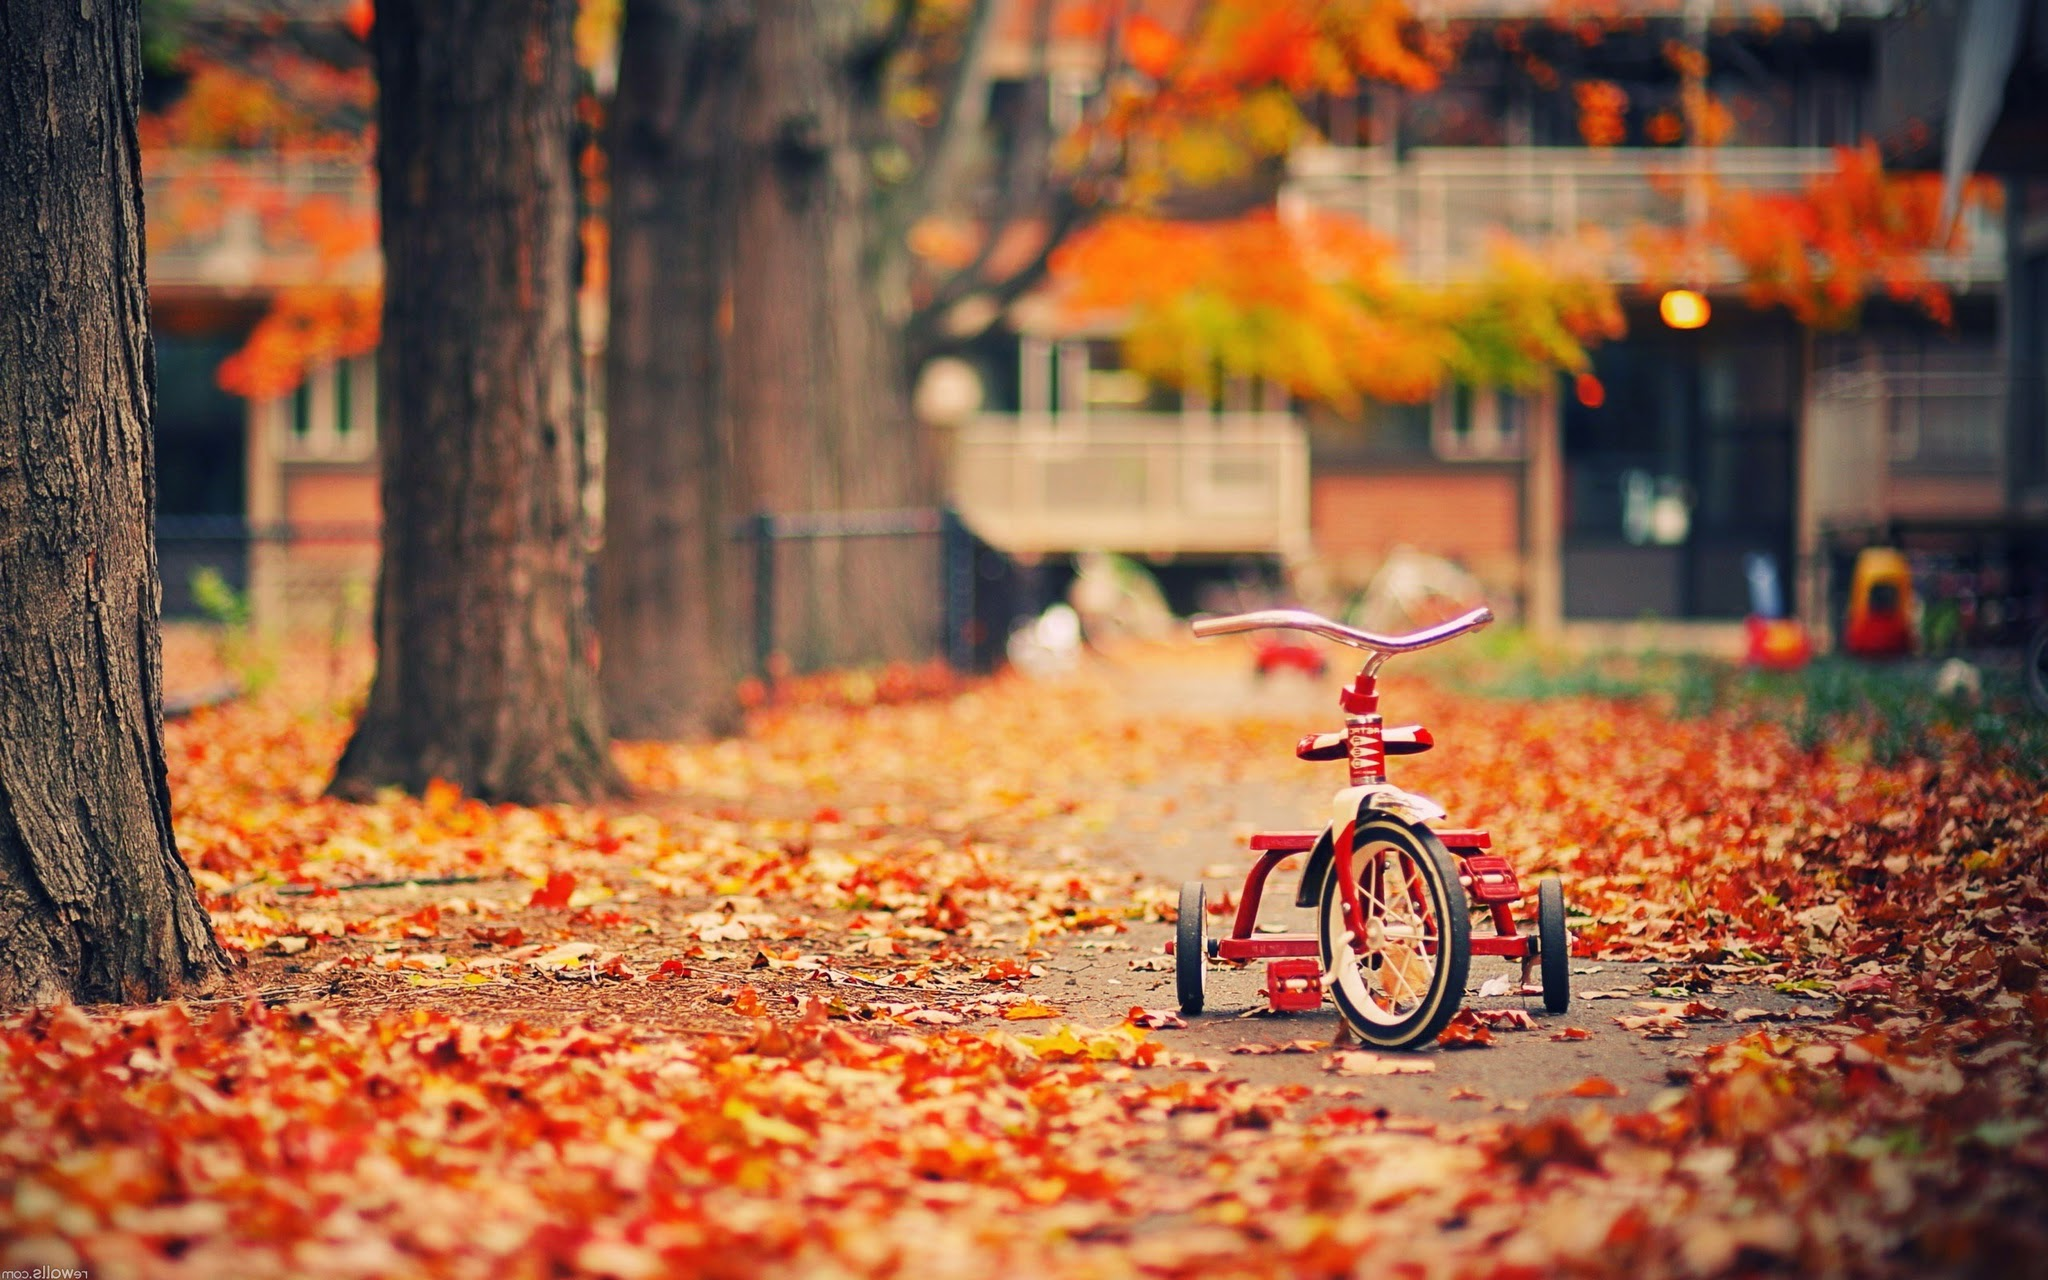 Alone Tricycle and Leafs, Trees HD Wallpaper